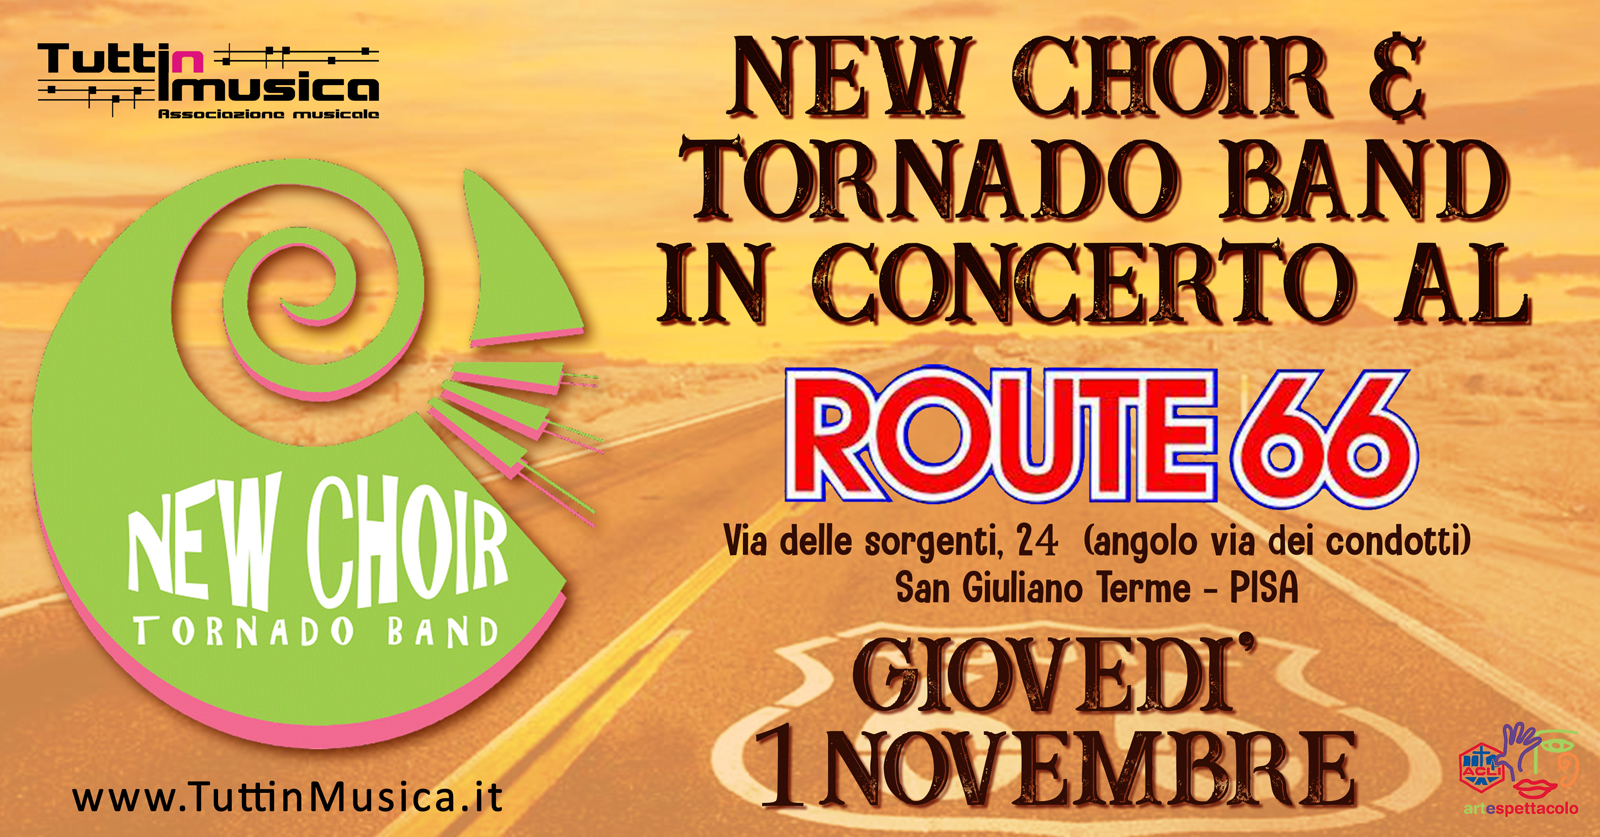 Concerto The New Choir & Tornado Band - Route 66